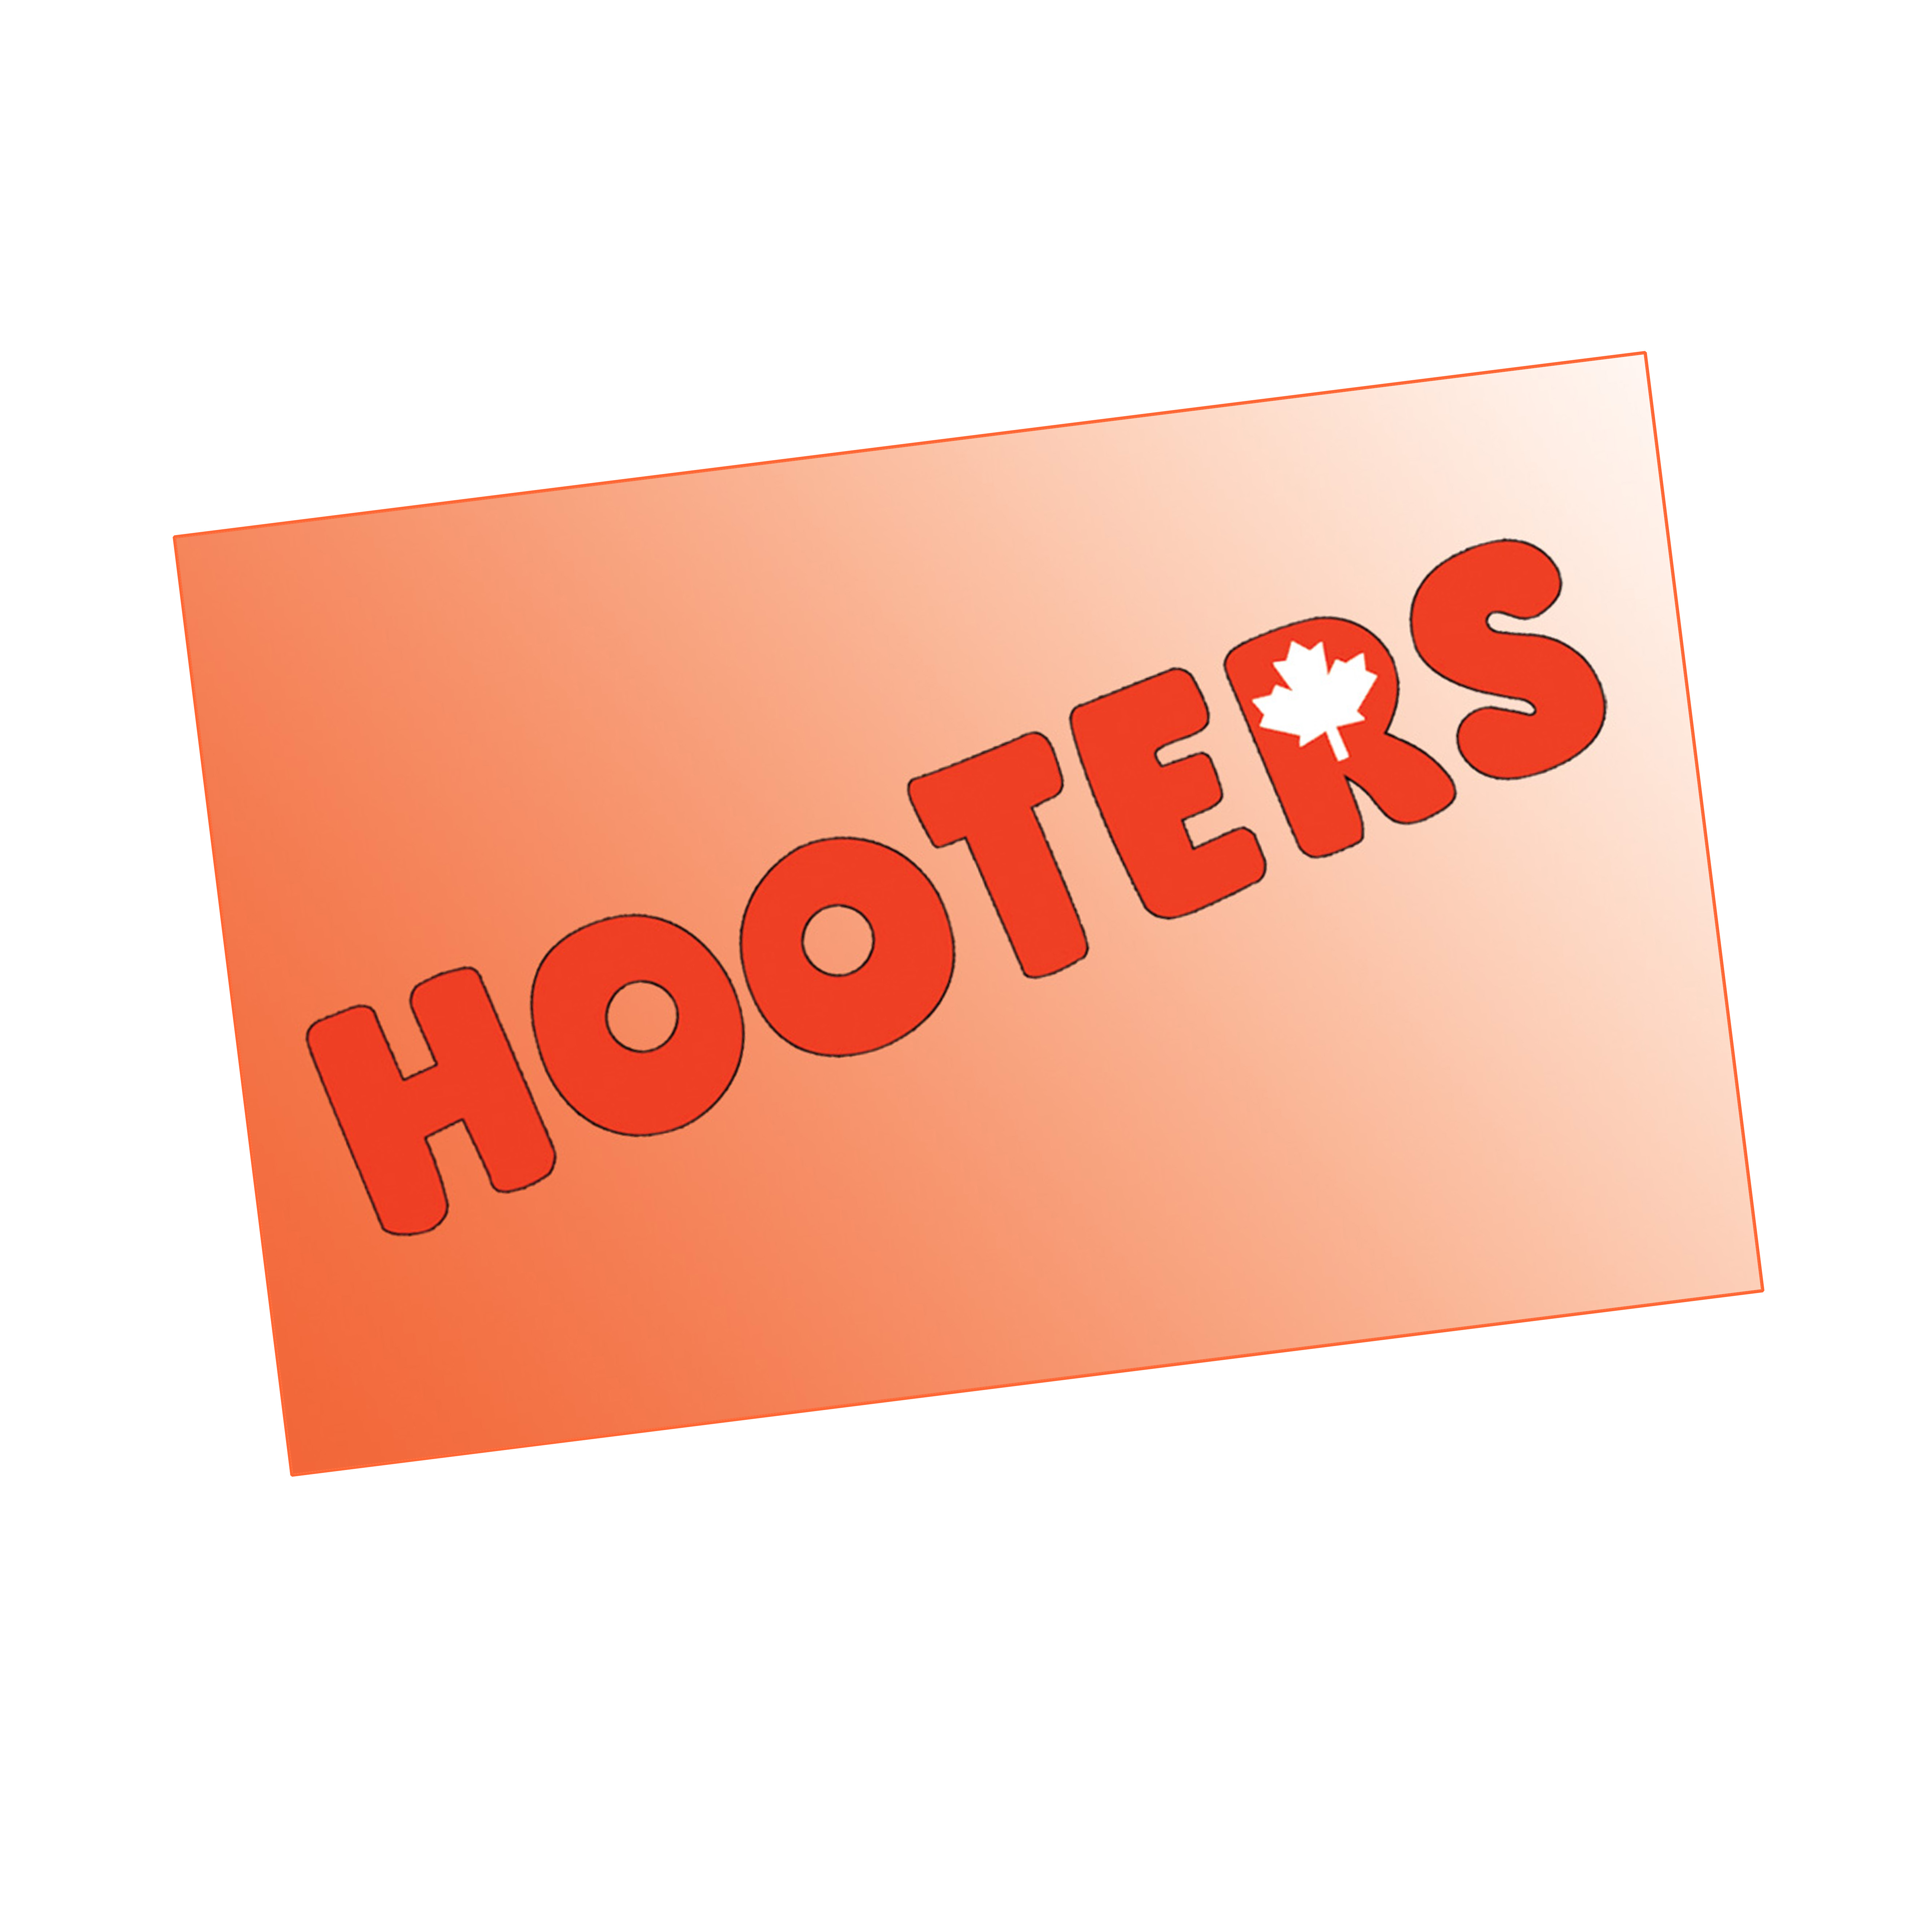 Hooters Gift Card1